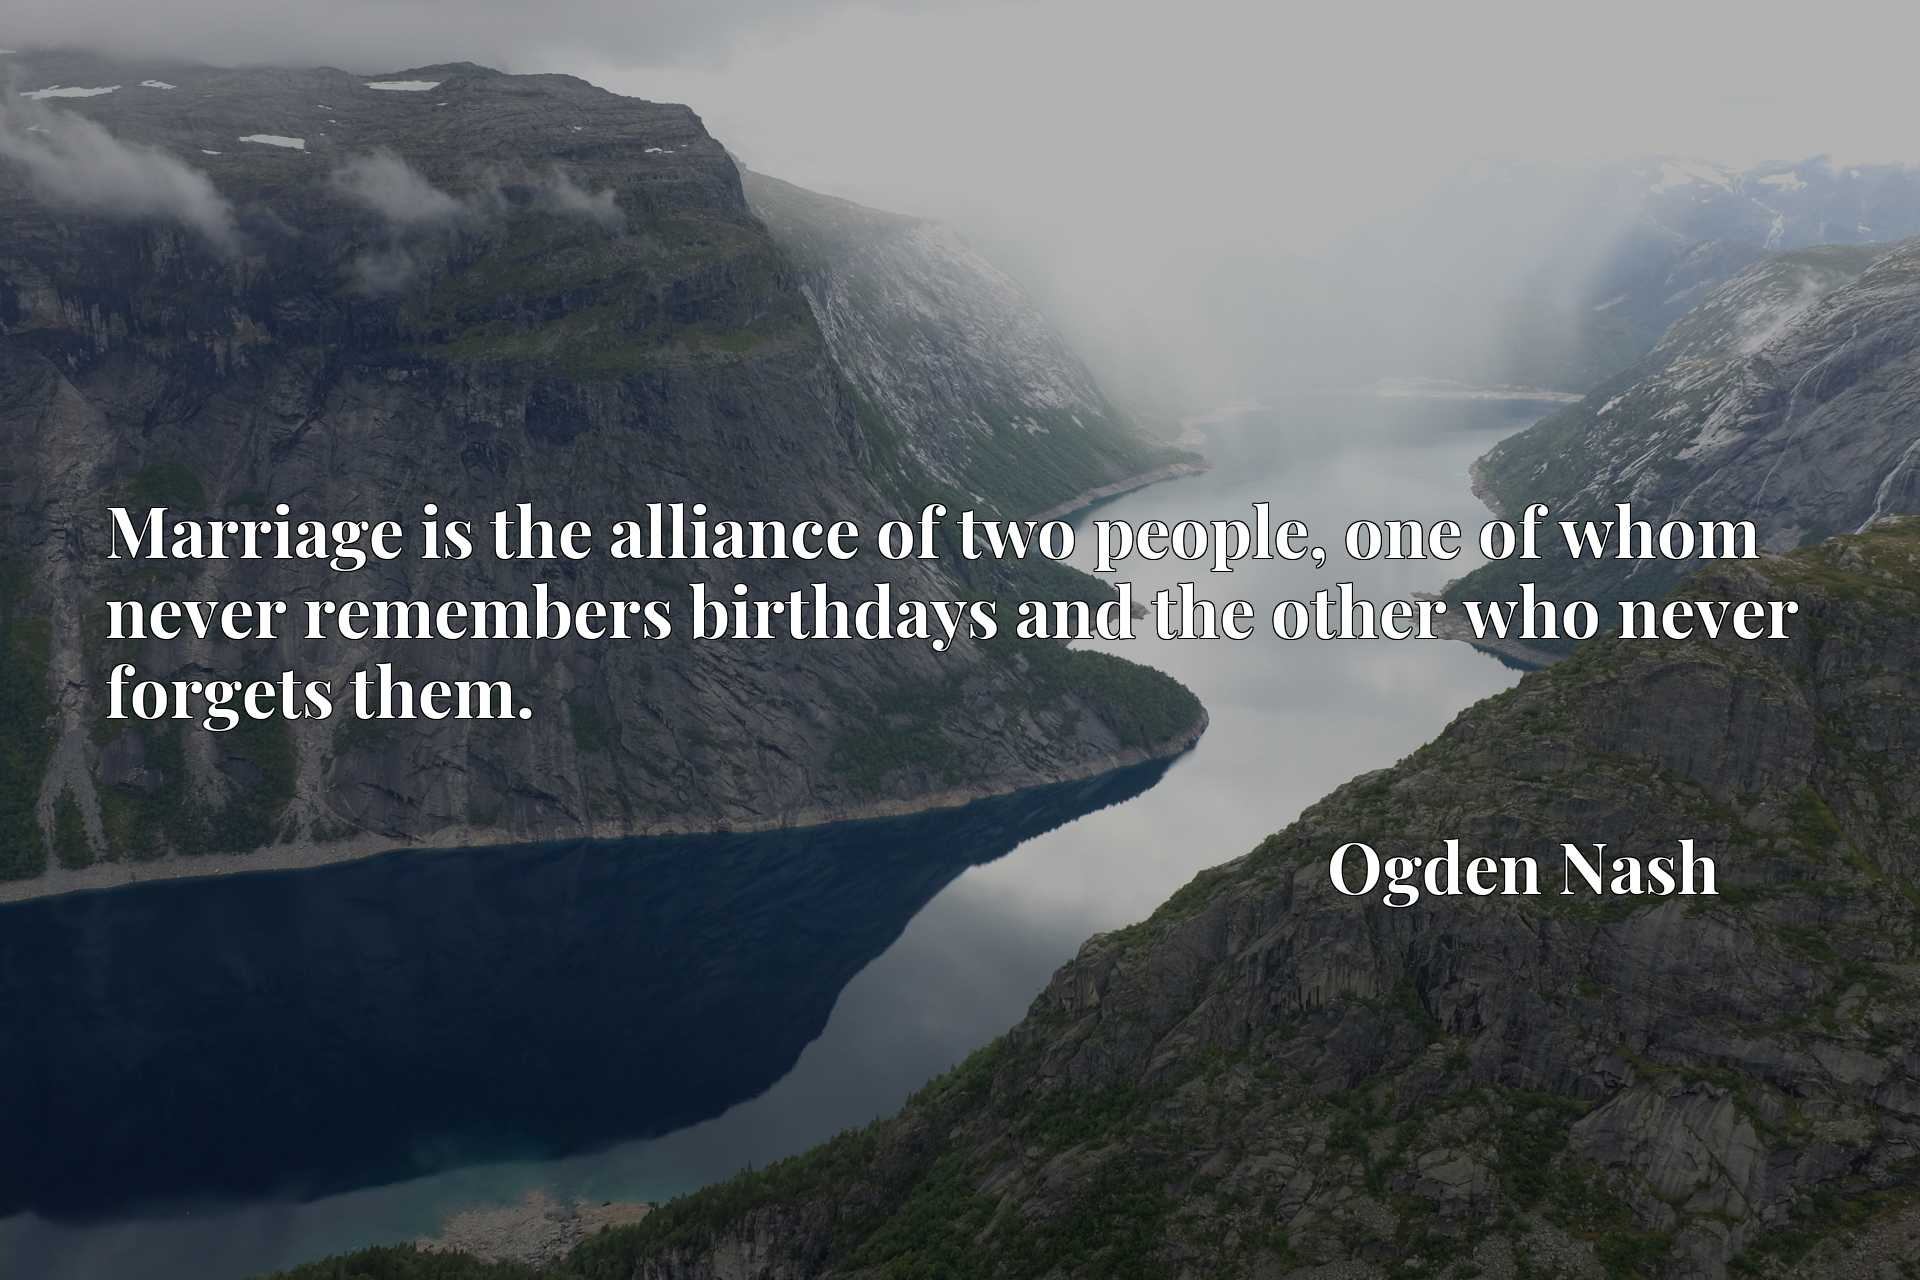 Quote Picture :Marriage is the alliance of two people, one of whom never remembers birthdays and the other who never forgets them.